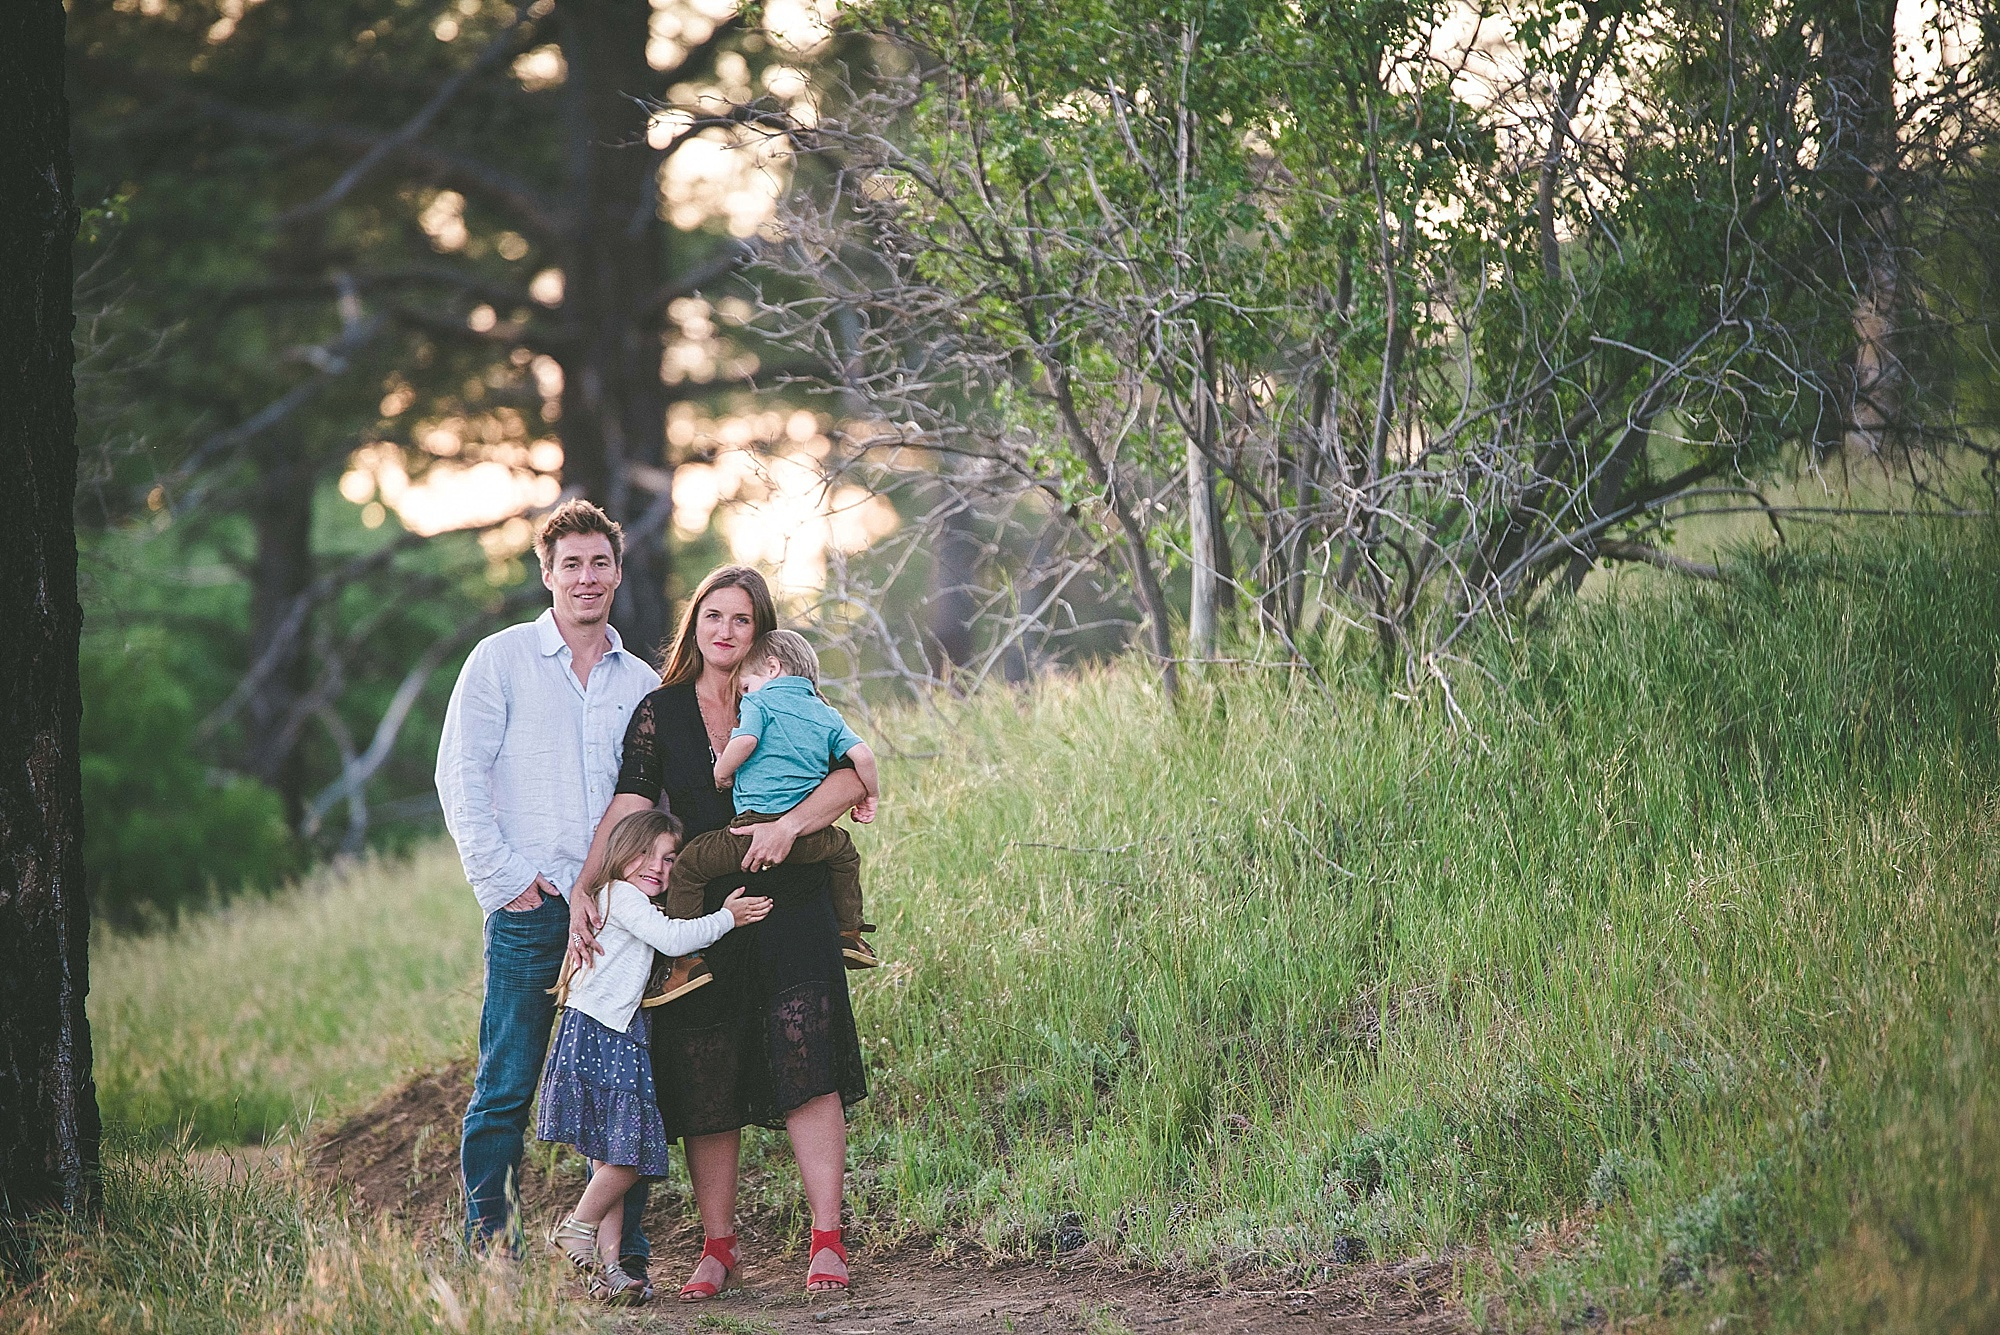 Hillside Adventure in California, family pictures, what to wear for family pictures